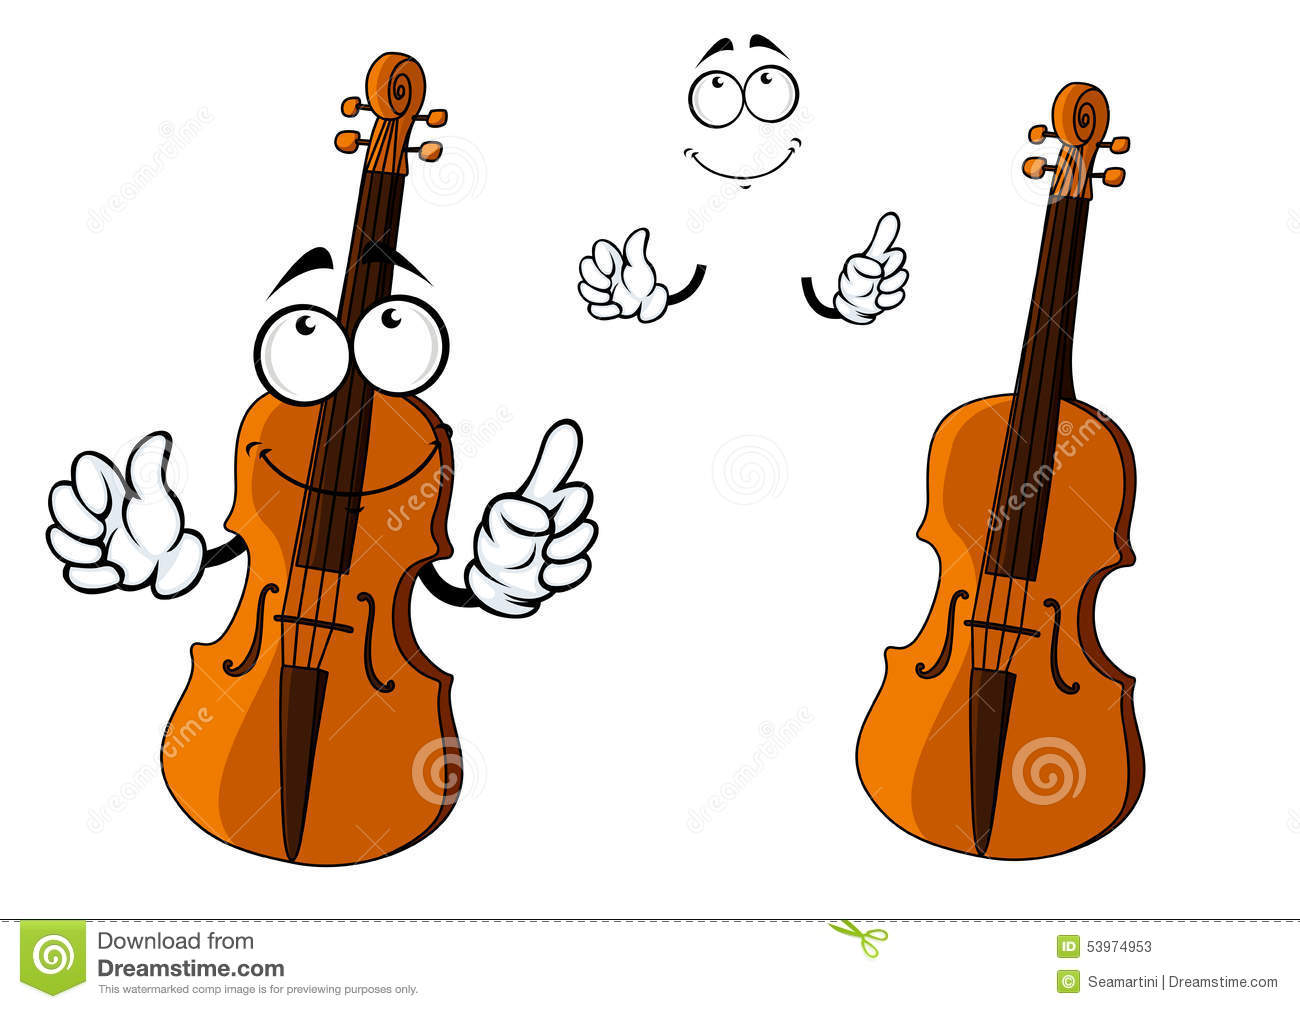 Cartoon Violin Images: Cartoon Smiling Brown Violin Character Stock Vector